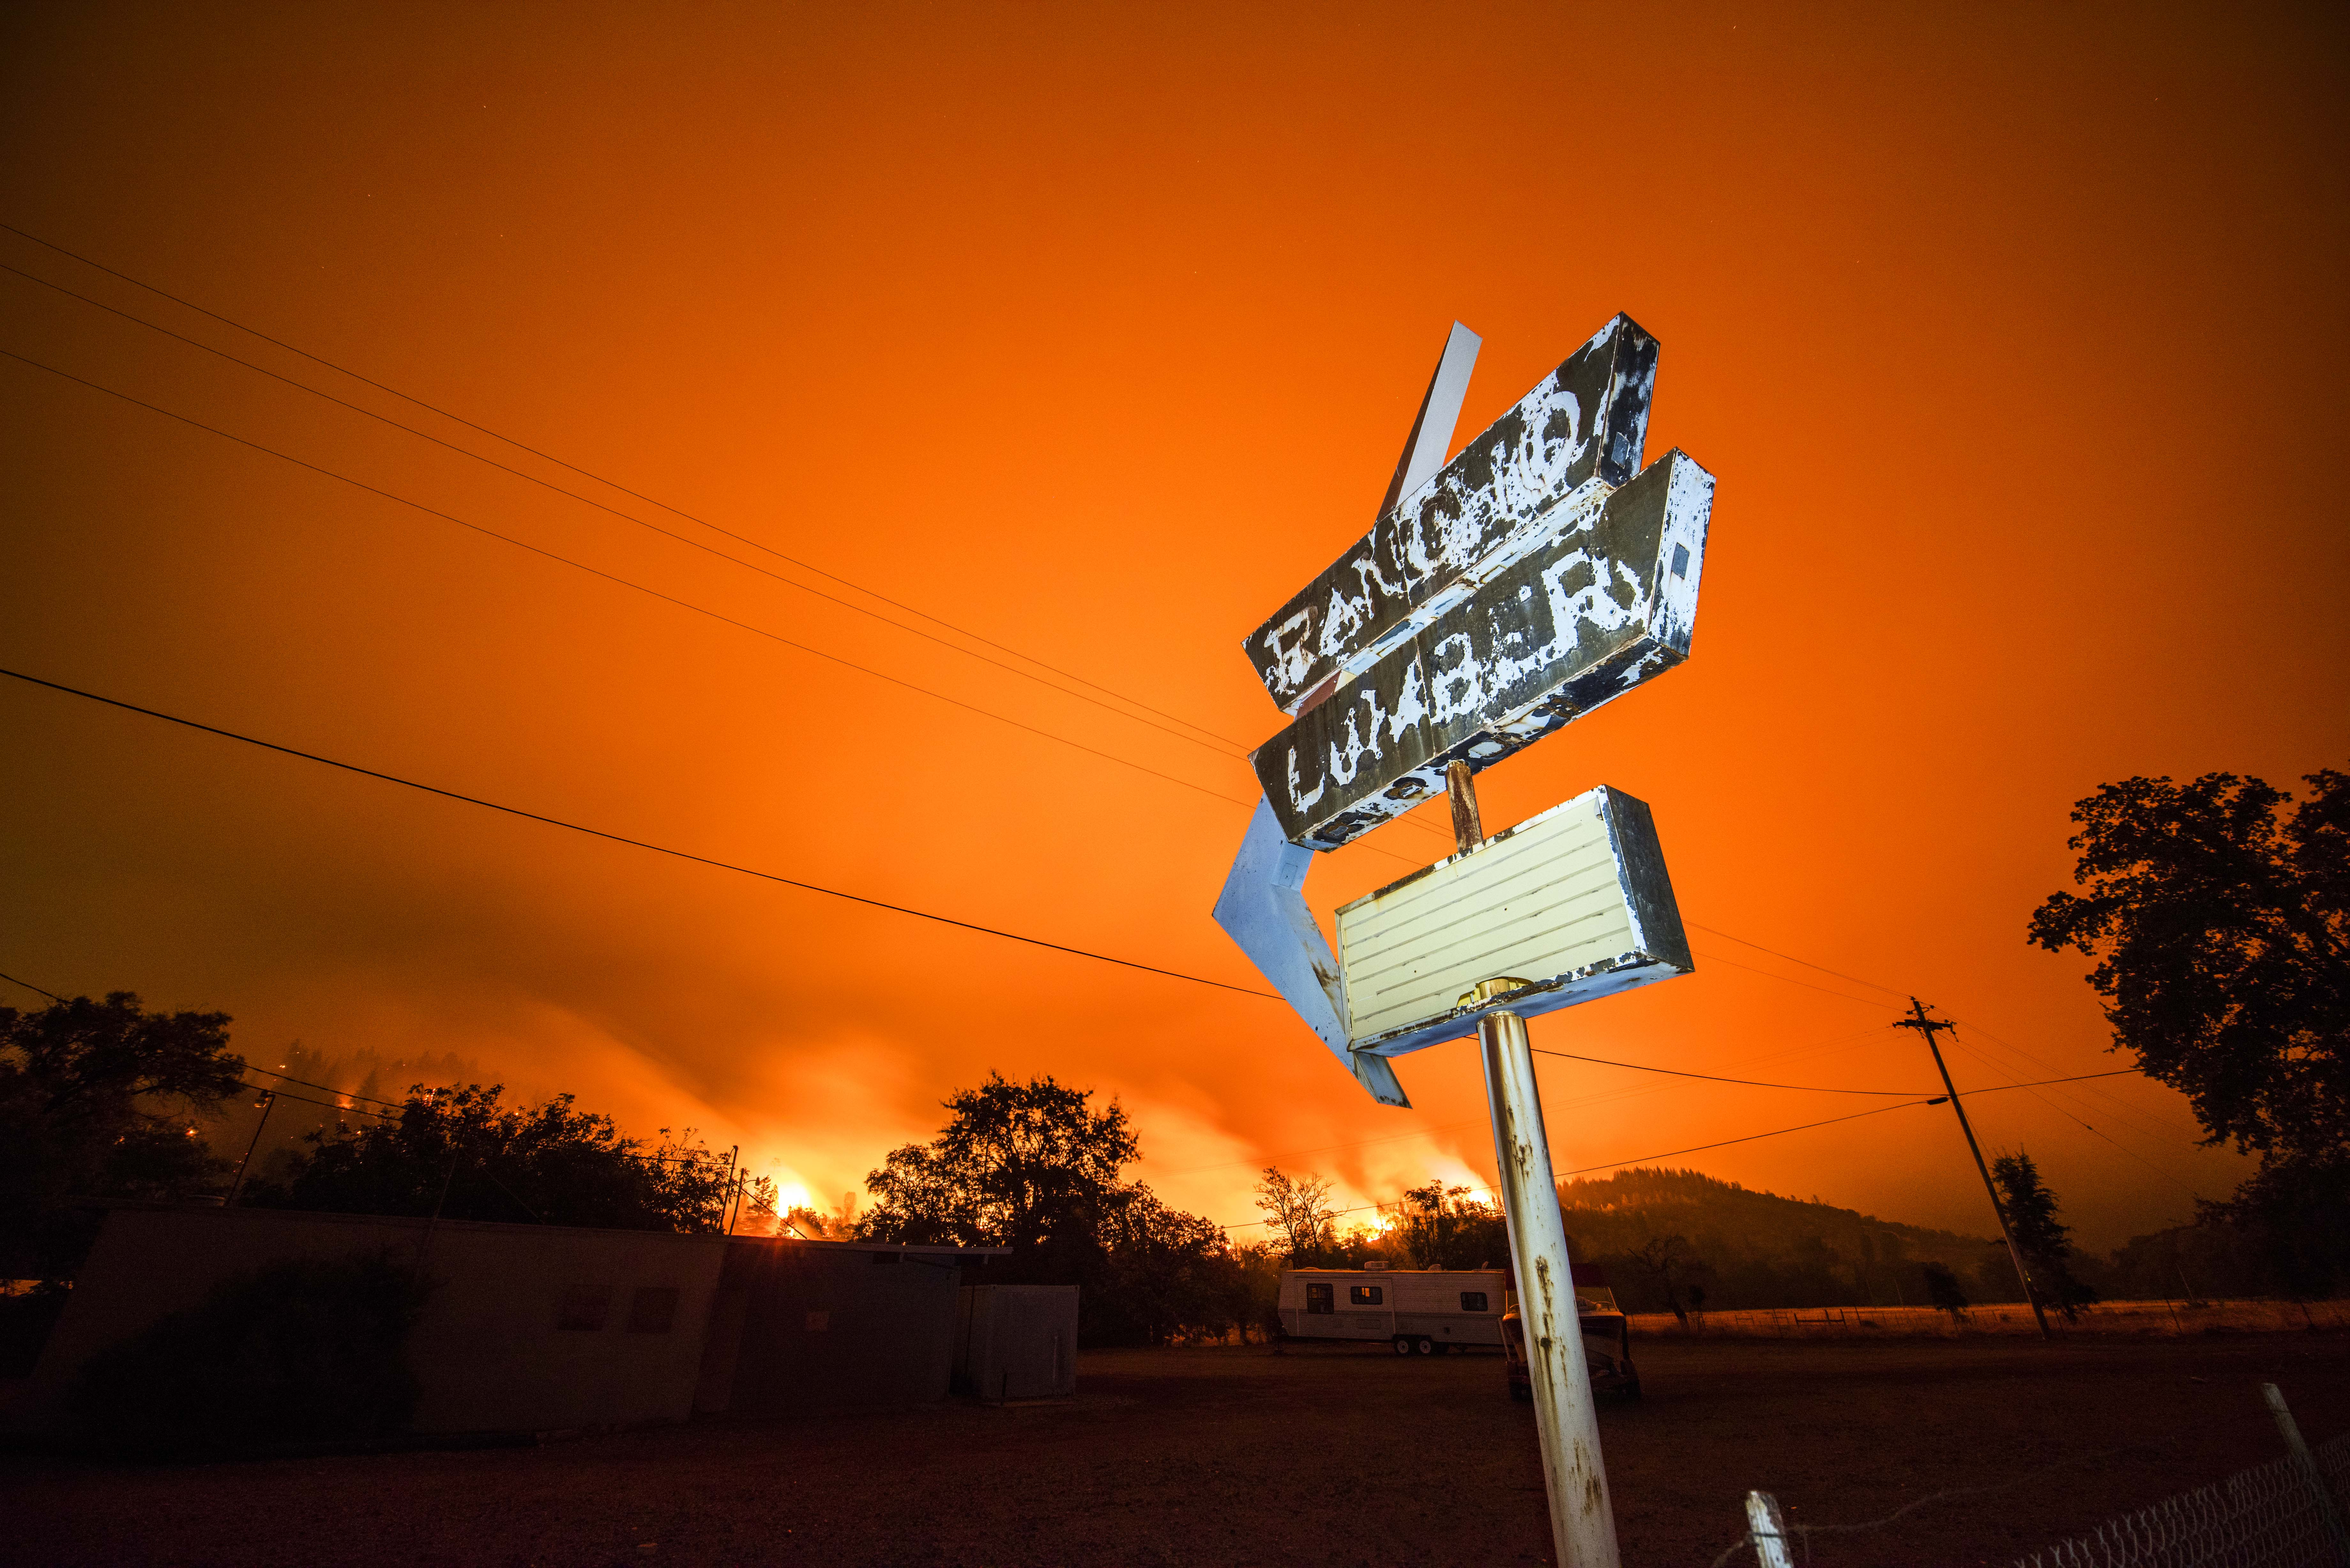 The Valley Fire burns off Highway 29 south of Middletown, Calif on Sept. 13, 2015.                                                              Valley Fire in Lake and Sonoma Counties Sunday September 13th, 2015. As of Sunday evening the fire had burned over 50,000 acres and was 0% contained.